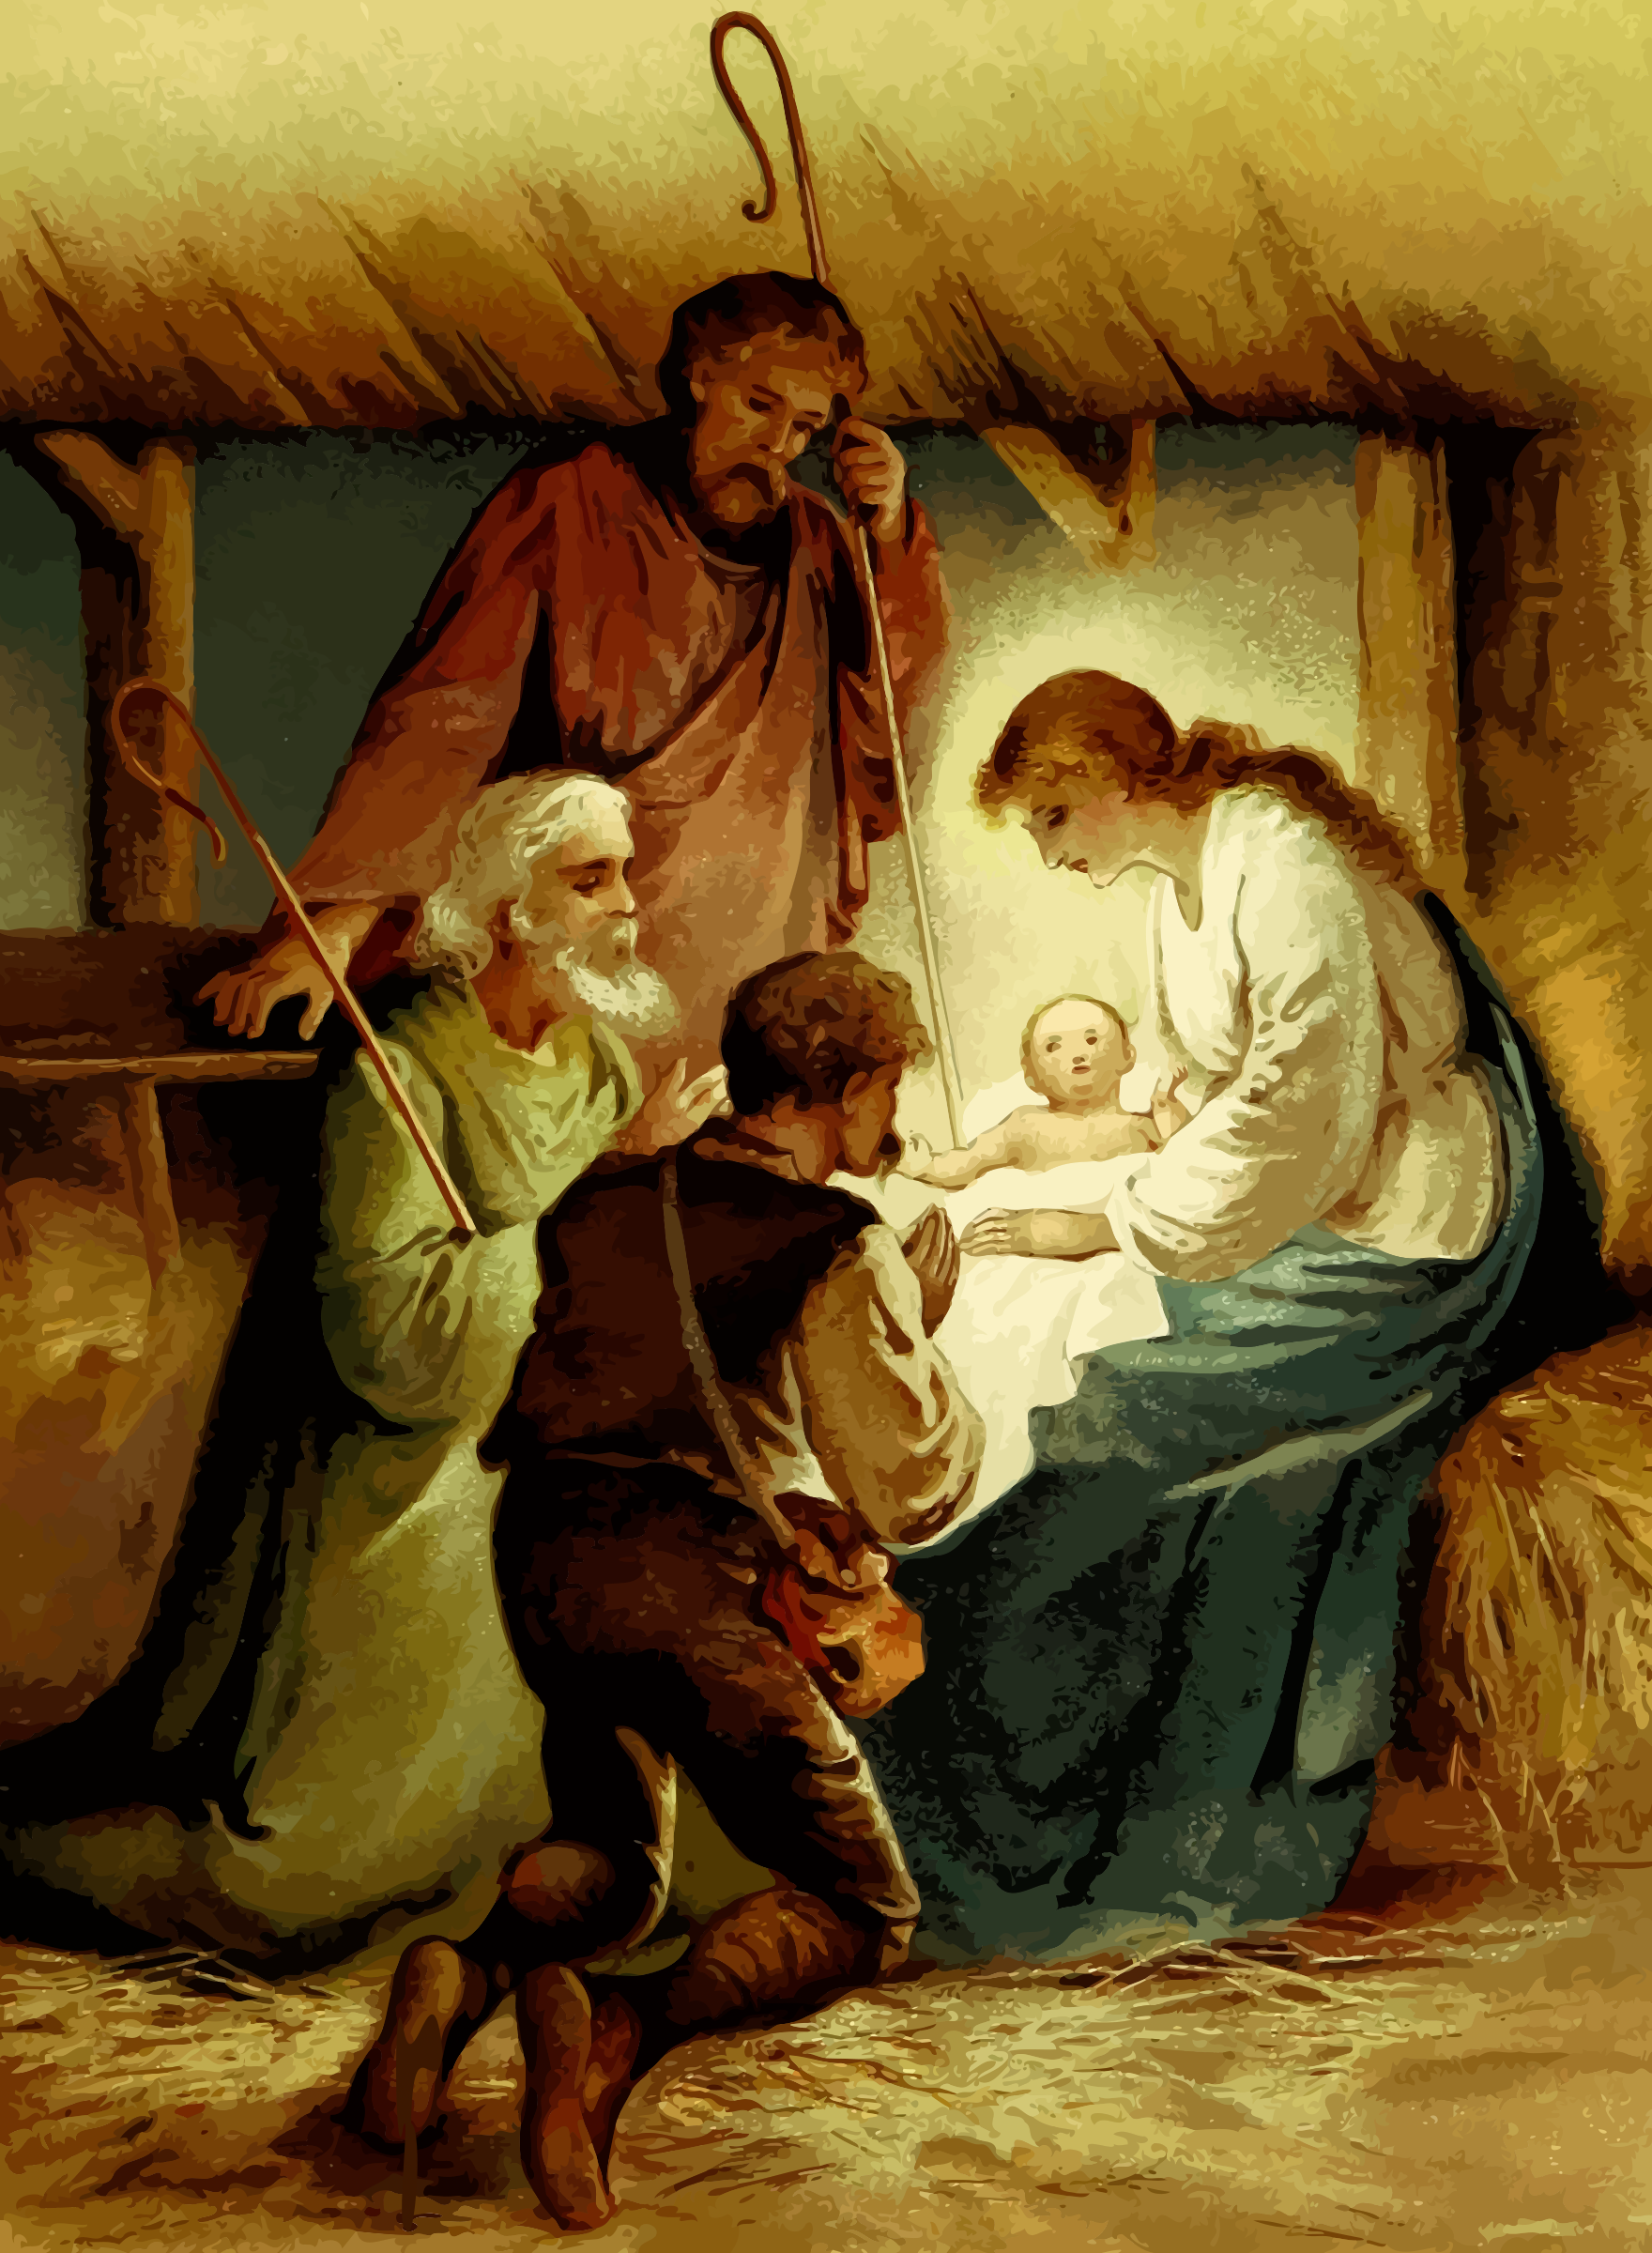 Nativity scene by Firkin